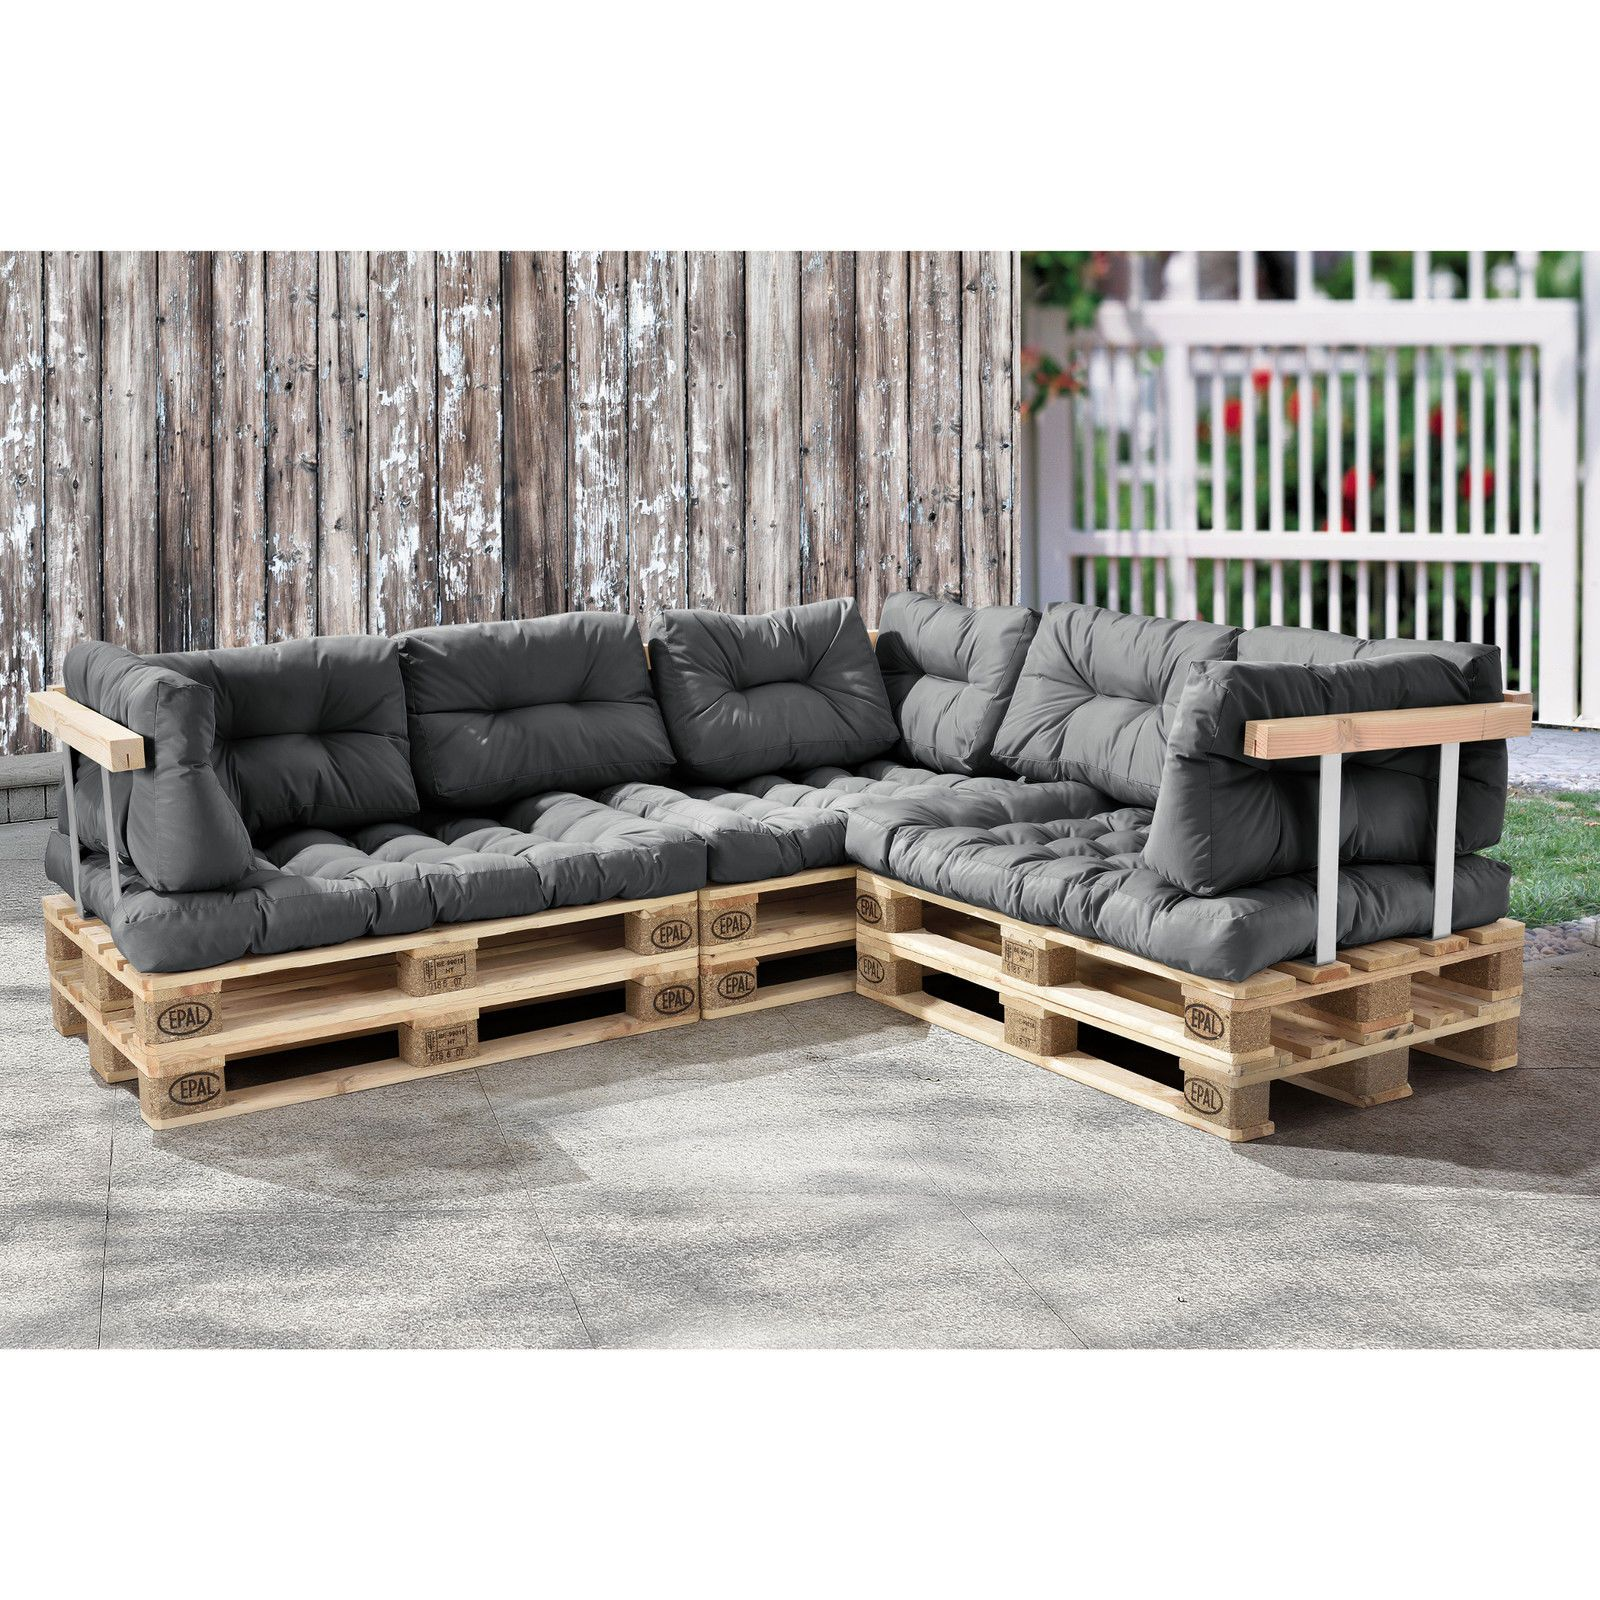 euro paletten sofa hellgrau ecksofa mit paletten polster kissen lehnen in garten. Black Bedroom Furniture Sets. Home Design Ideas